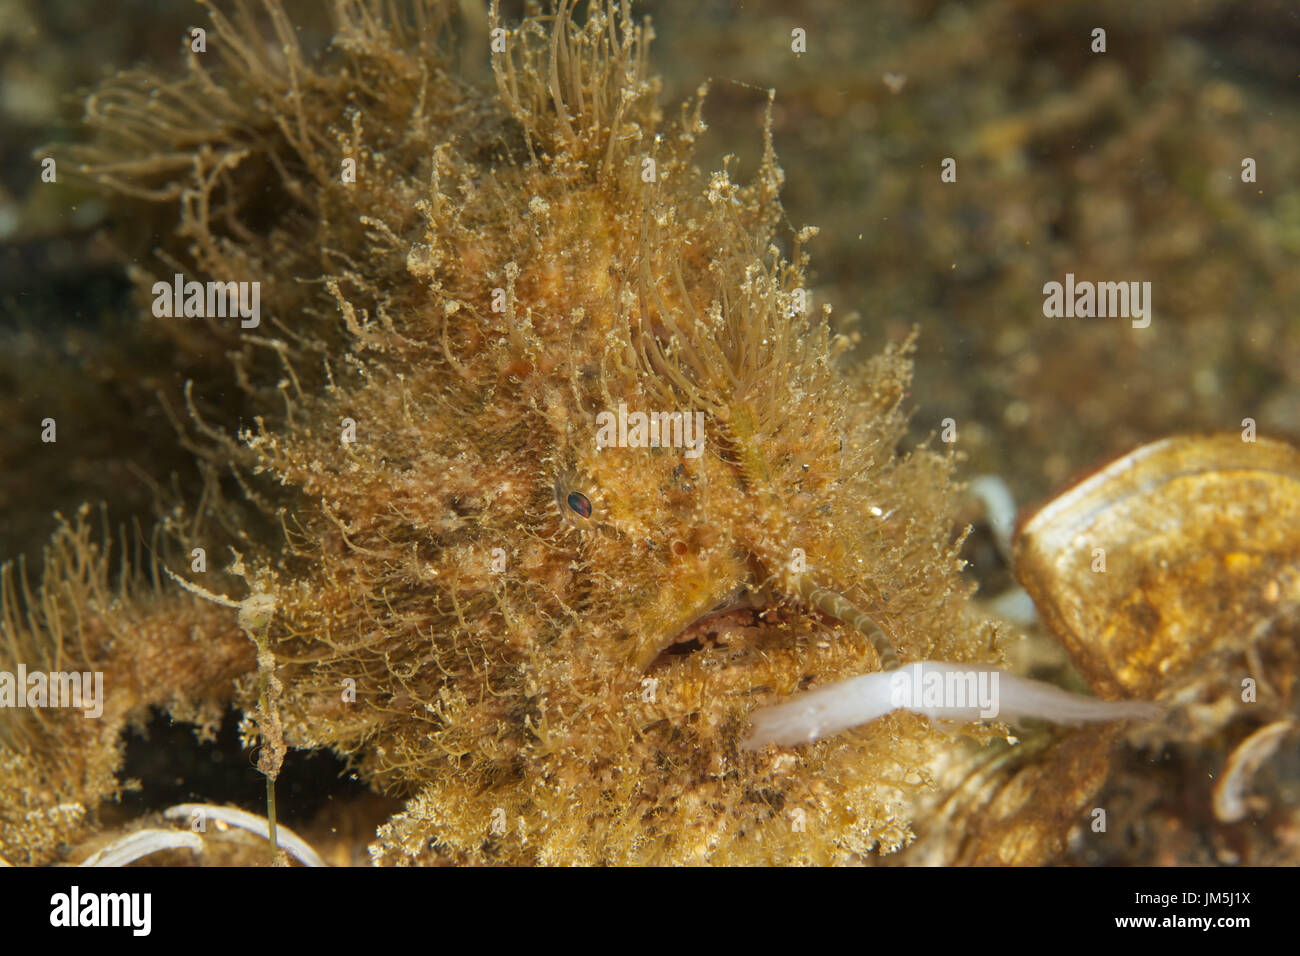 Muck diving, Lembeh Straits, Indonesia - Stock Image